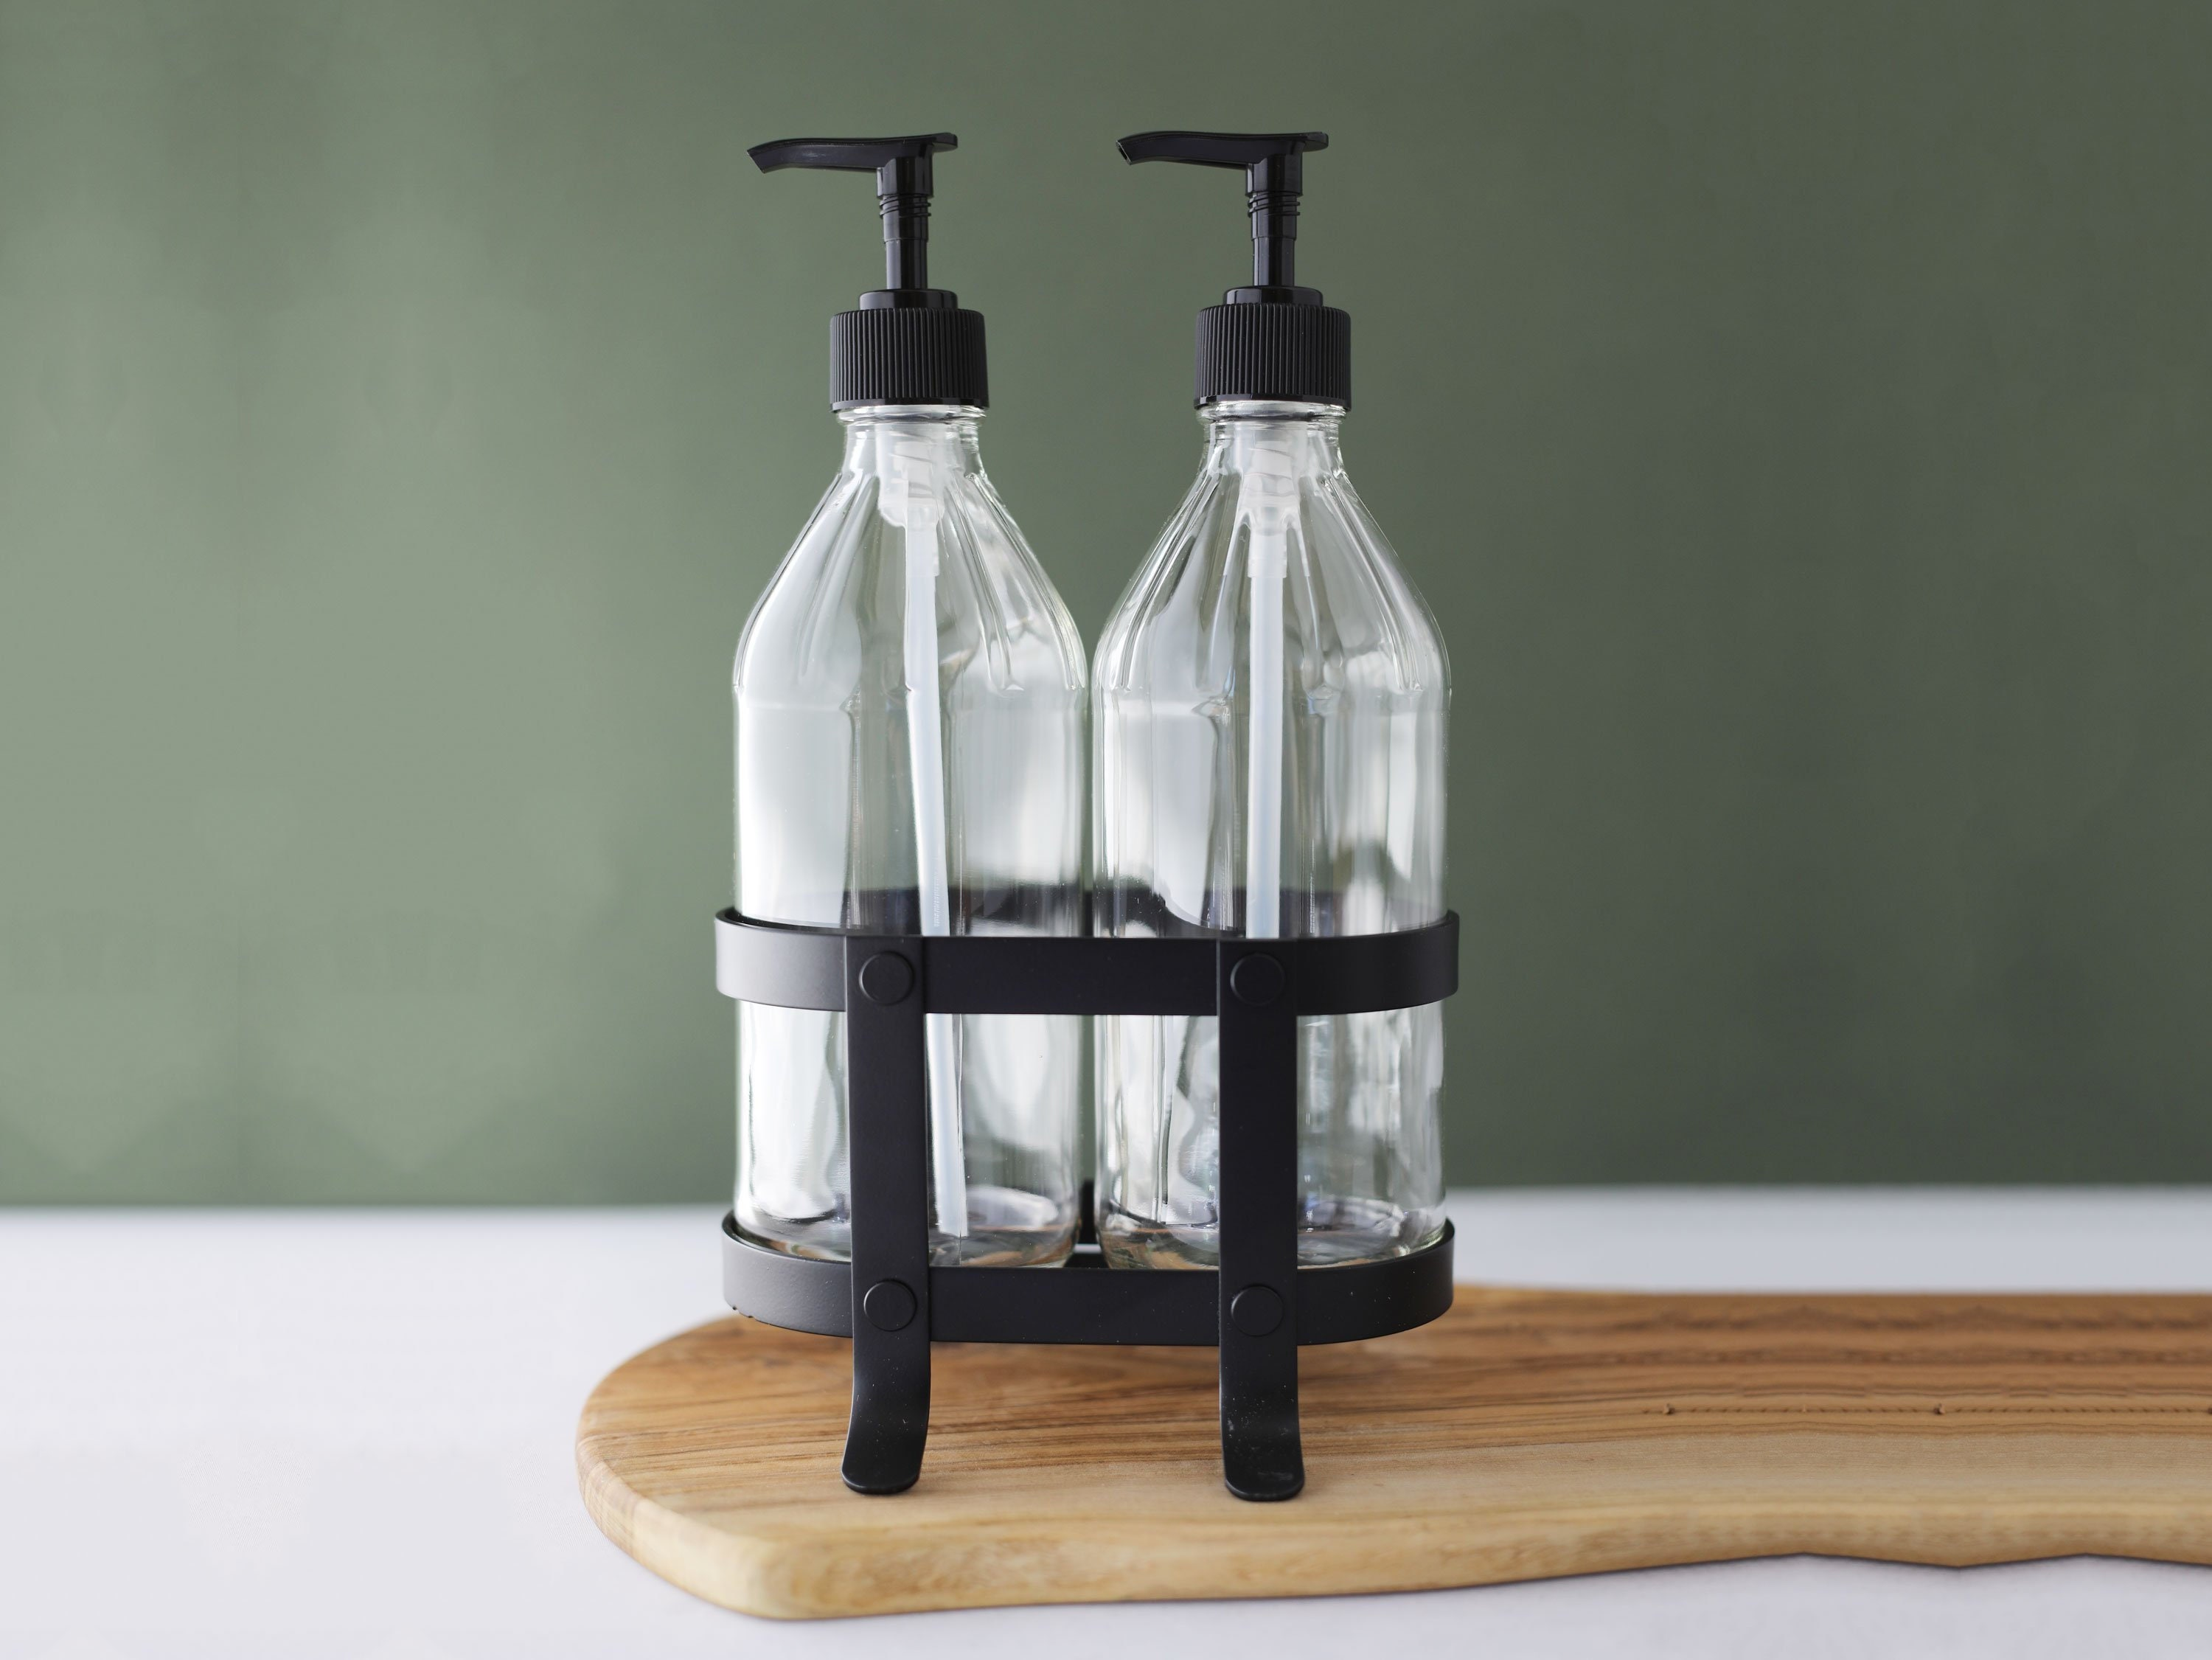 Vintage Kitchen Dish Soap + Hand Soap Dispenser Set with Black Metal Stand  / Caddy Perfect for The Kitchen Sink